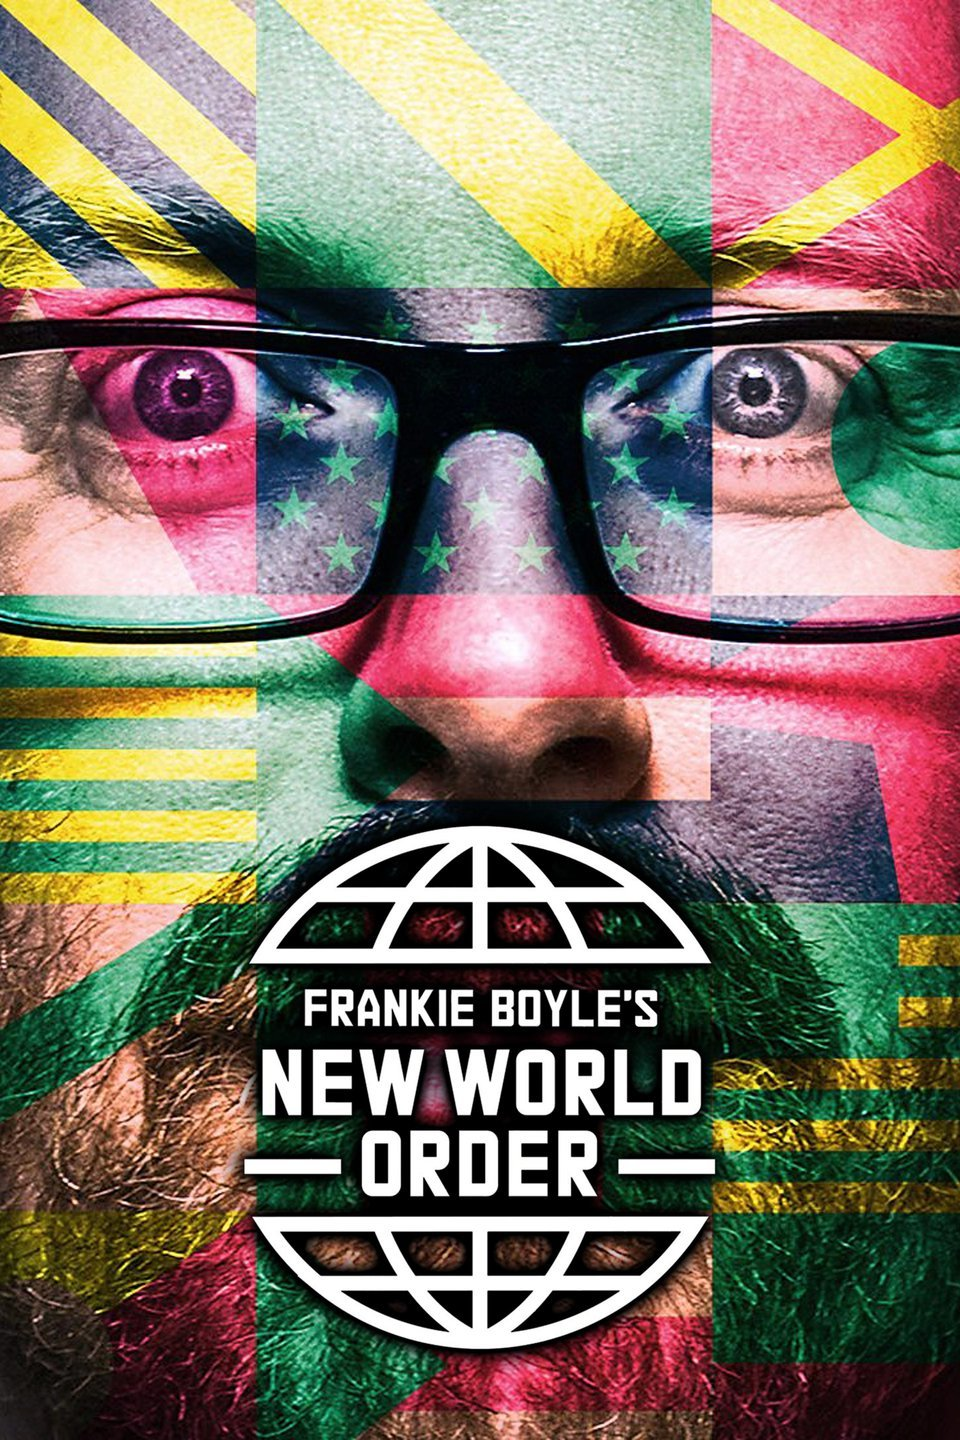 Frankie.Boyles.New.World.Order.S04E07.1080p.HDTV.x264-DARKFLiX